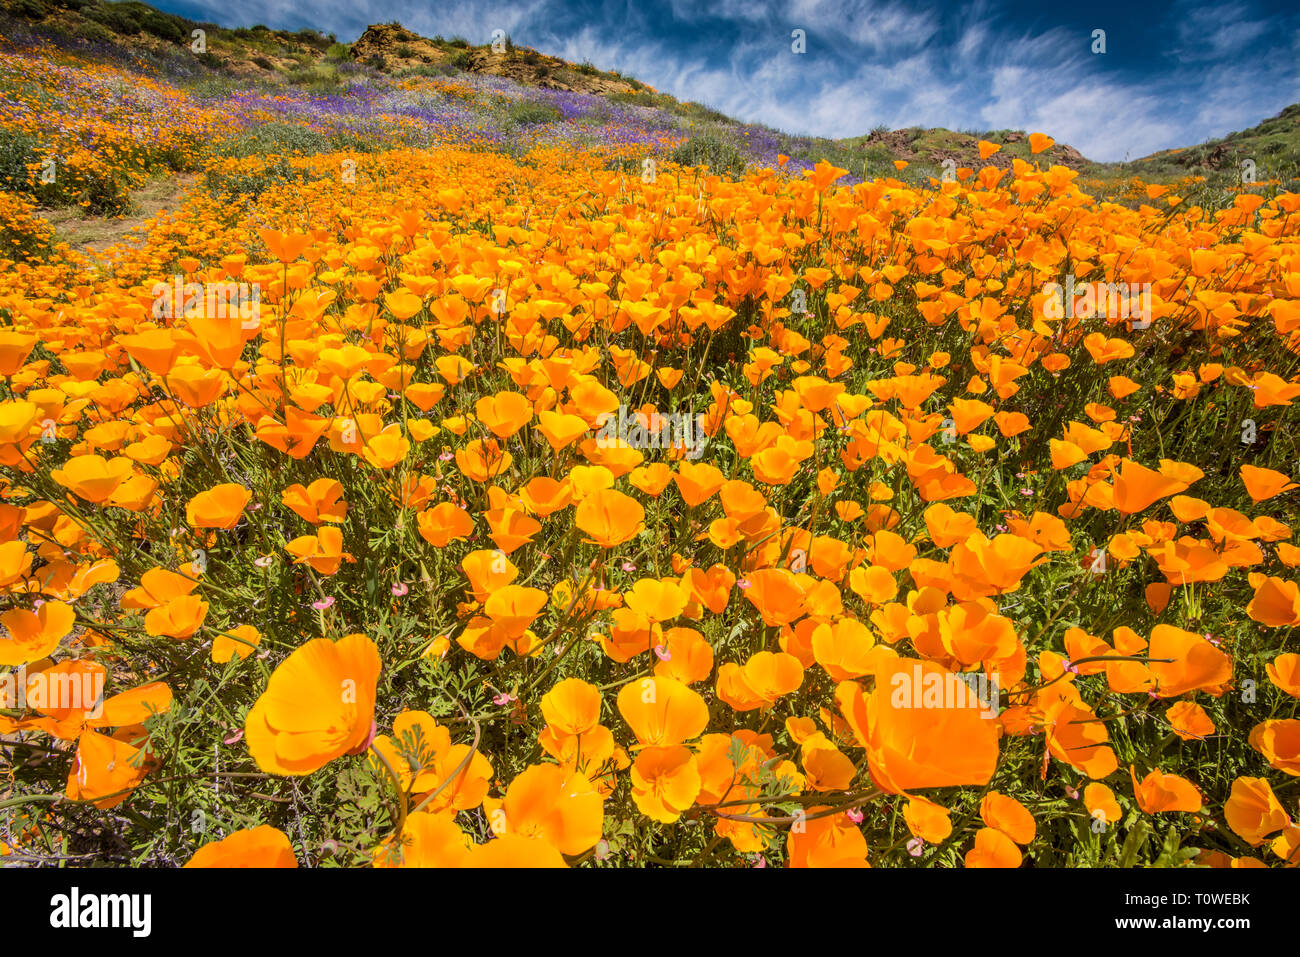 Super Bloom of poppies and other wildflowers at Lake Elsinore, California, USA March, 2019 Stock Photo